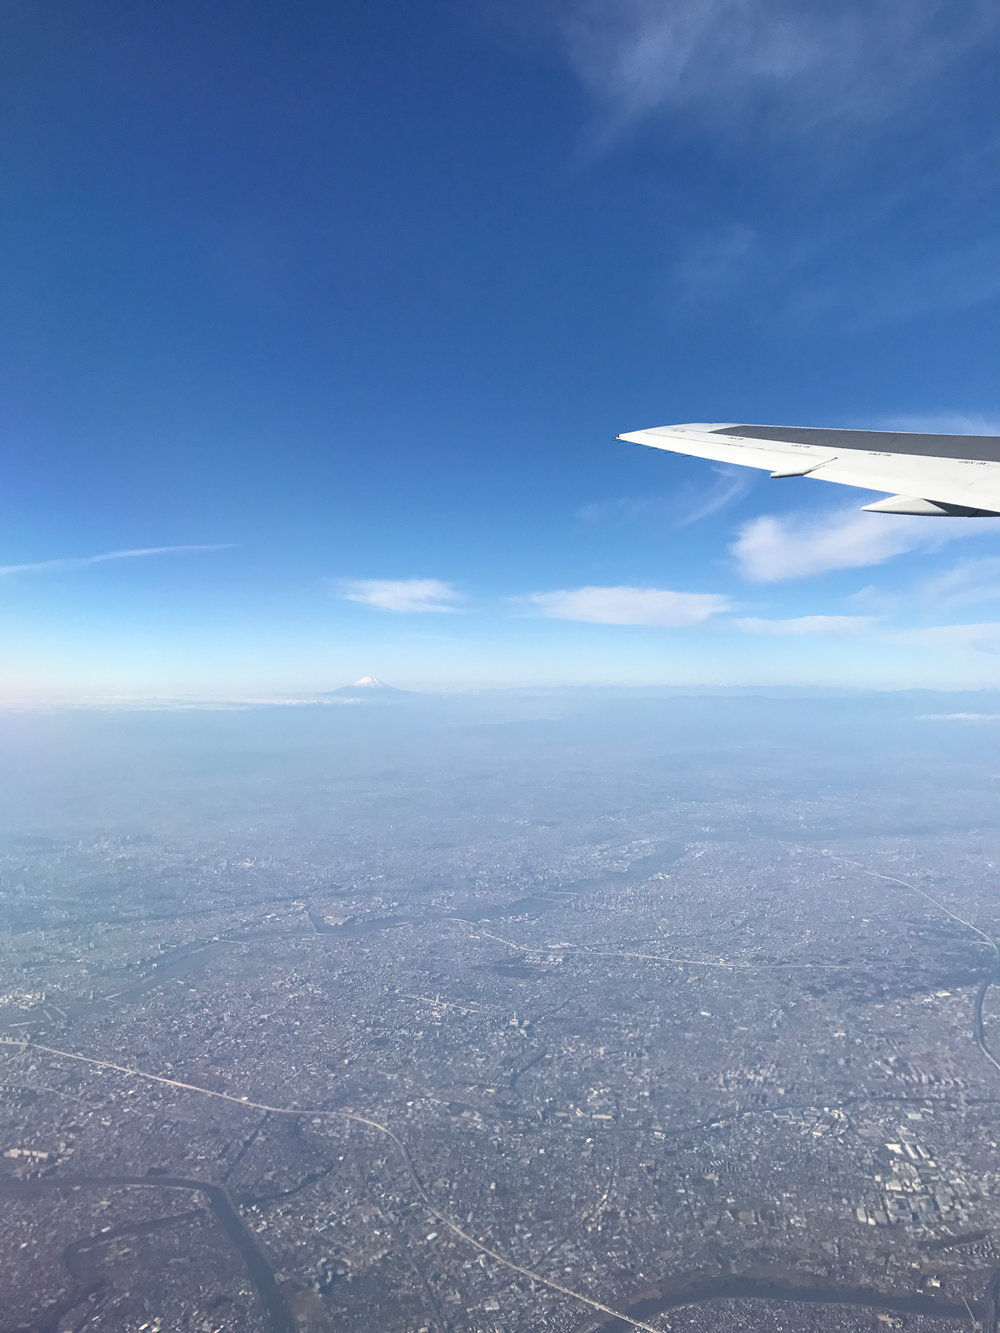 Haneda to Shin-Chitose air port! Can you spot Mt. Fuji?